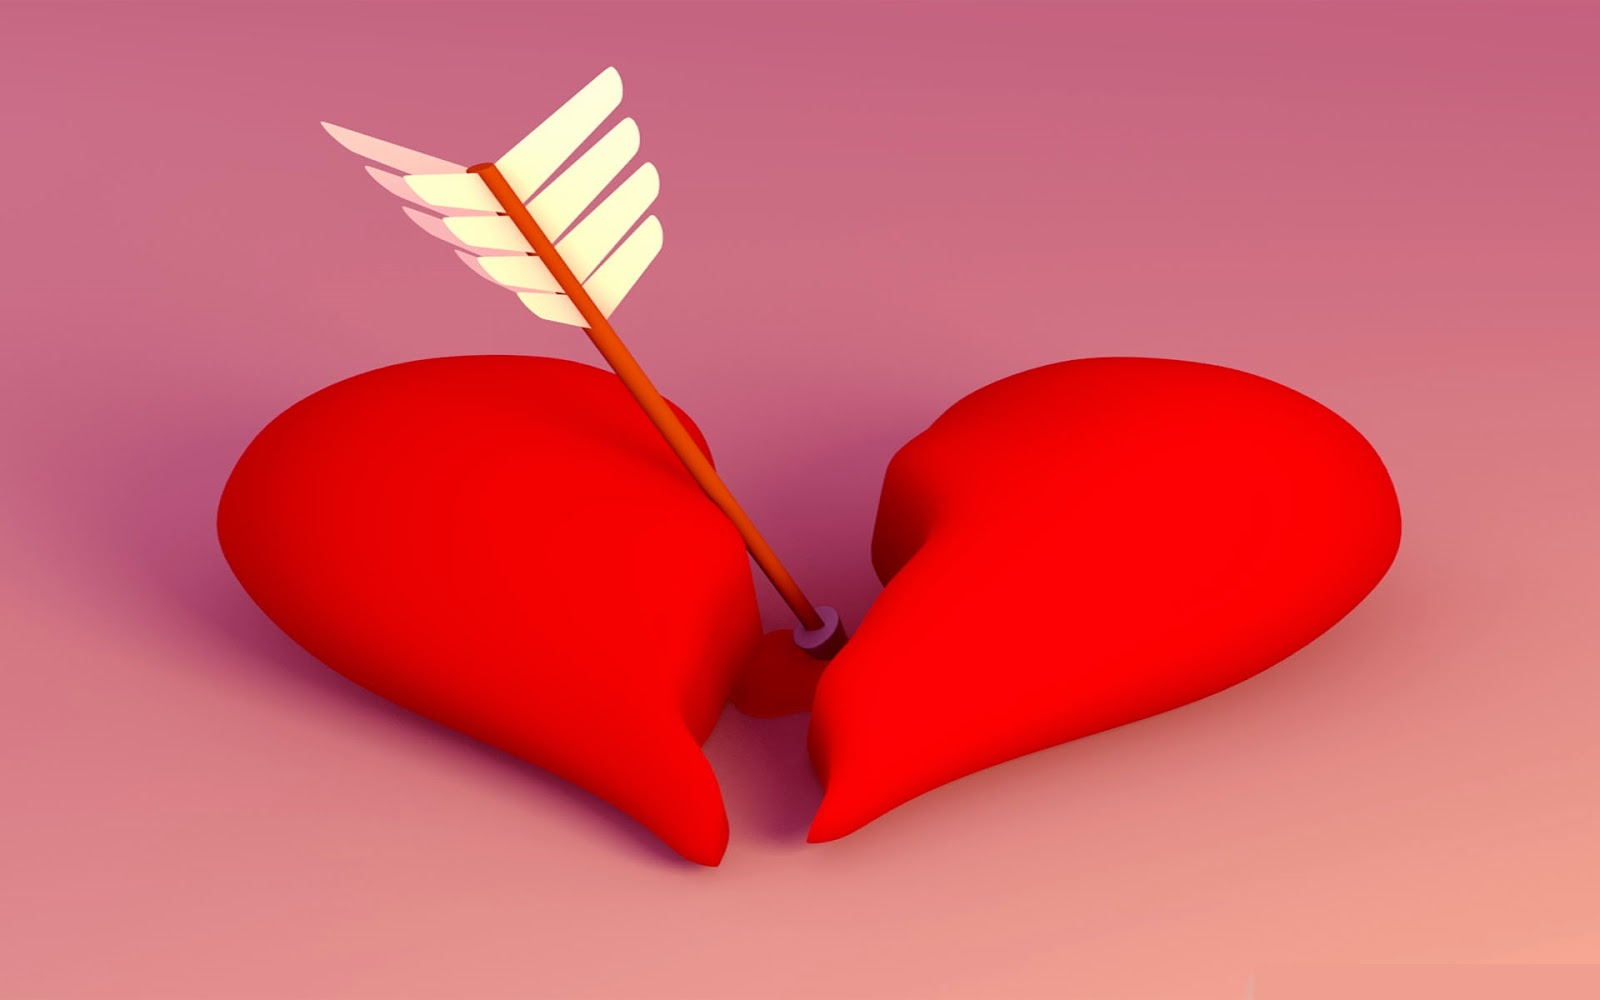 Broken Heart Images Broken heart hd wallpapers and